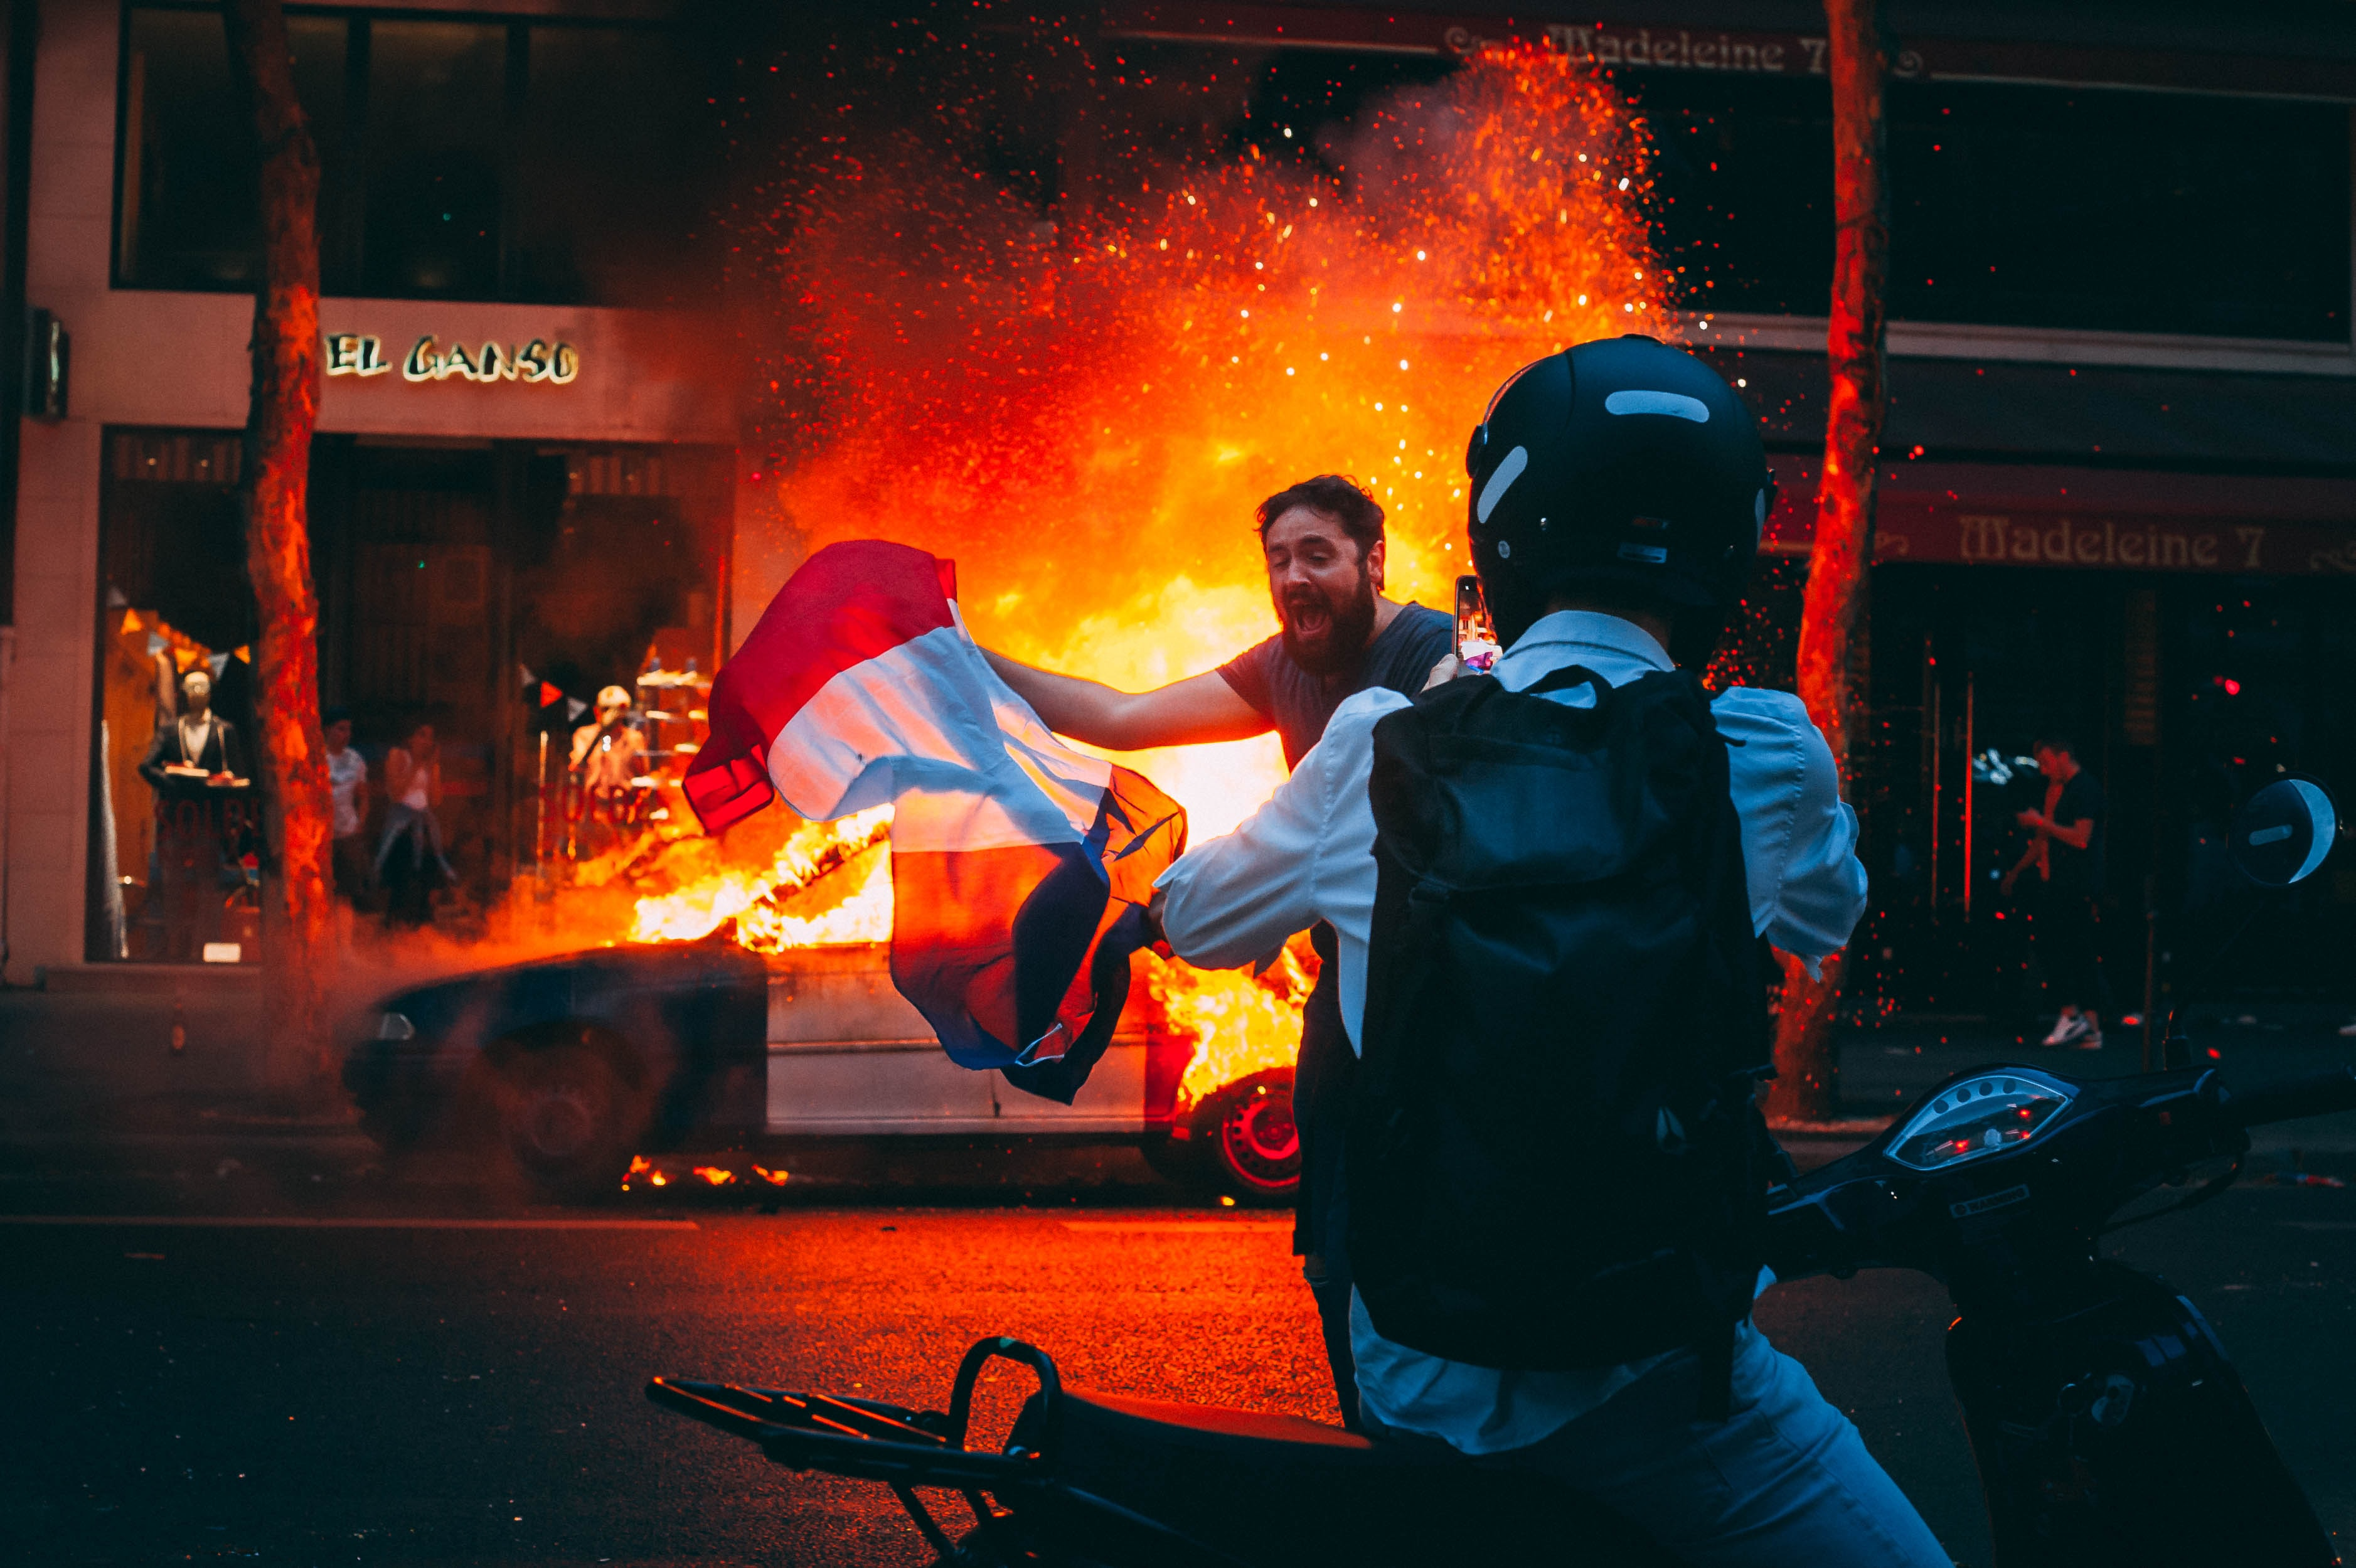 A fan celebrates after France wins the 2018 World Cup